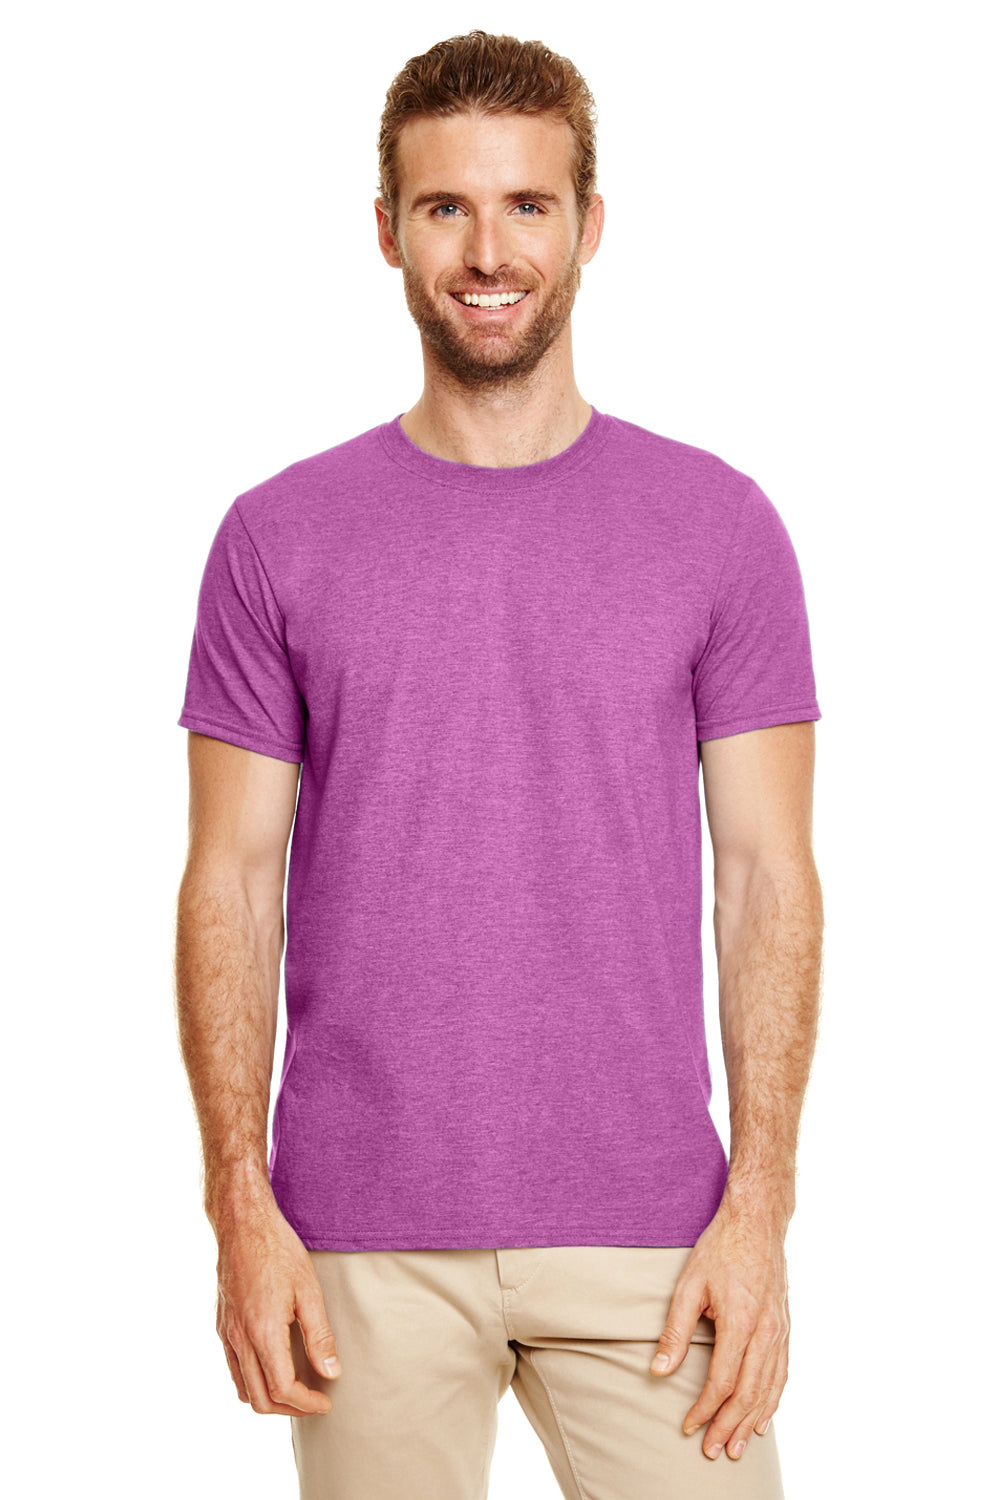 Gildan G640 Mens Softstyle Short Sleeve Crewneck T-Shirt Heather Orchid Purple Front